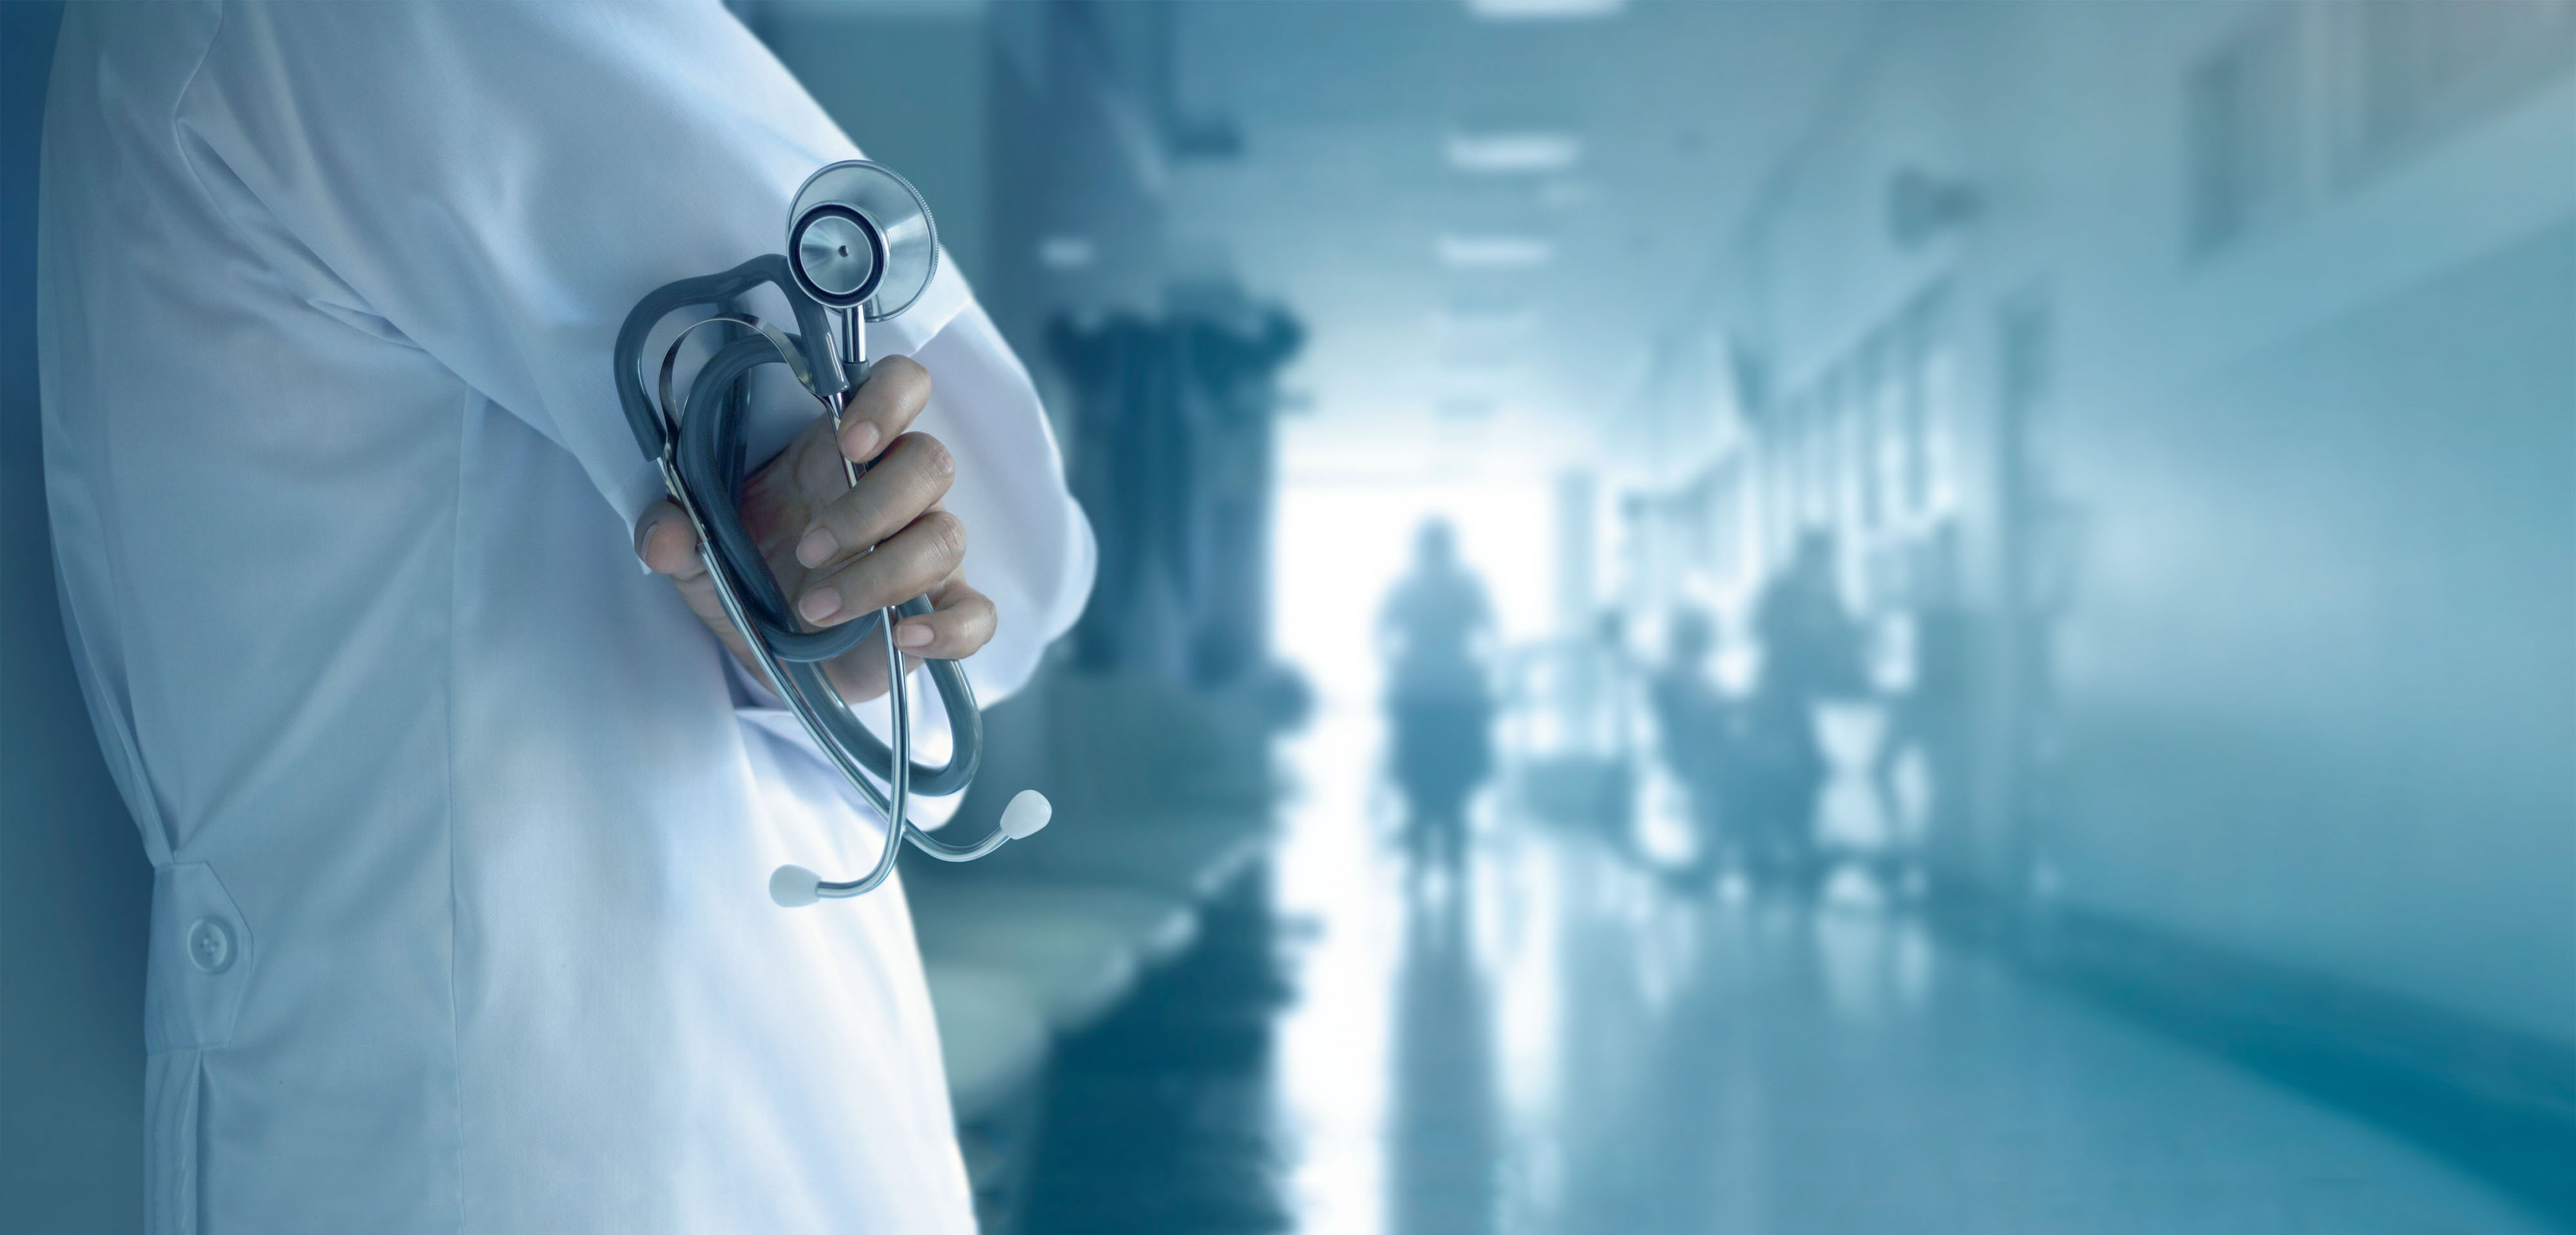 Healthcare Global Leader Uses Analytics and Science to Discover Better Privacy-Oriented Patient Solutions